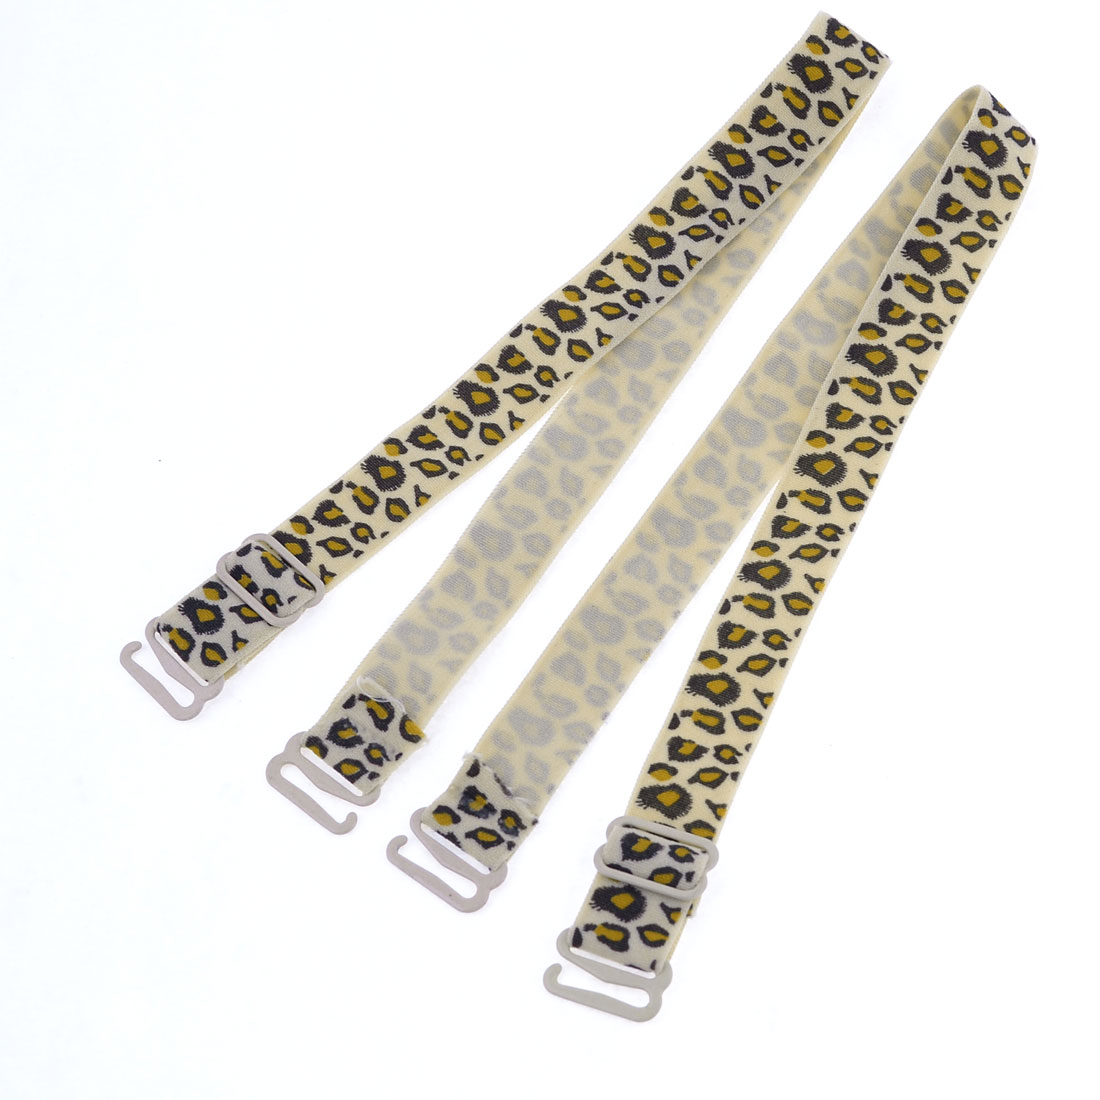 Leopard Pattern Beige Elastic Fabric Plastic Hook End Bra Straps Pair for Ladies